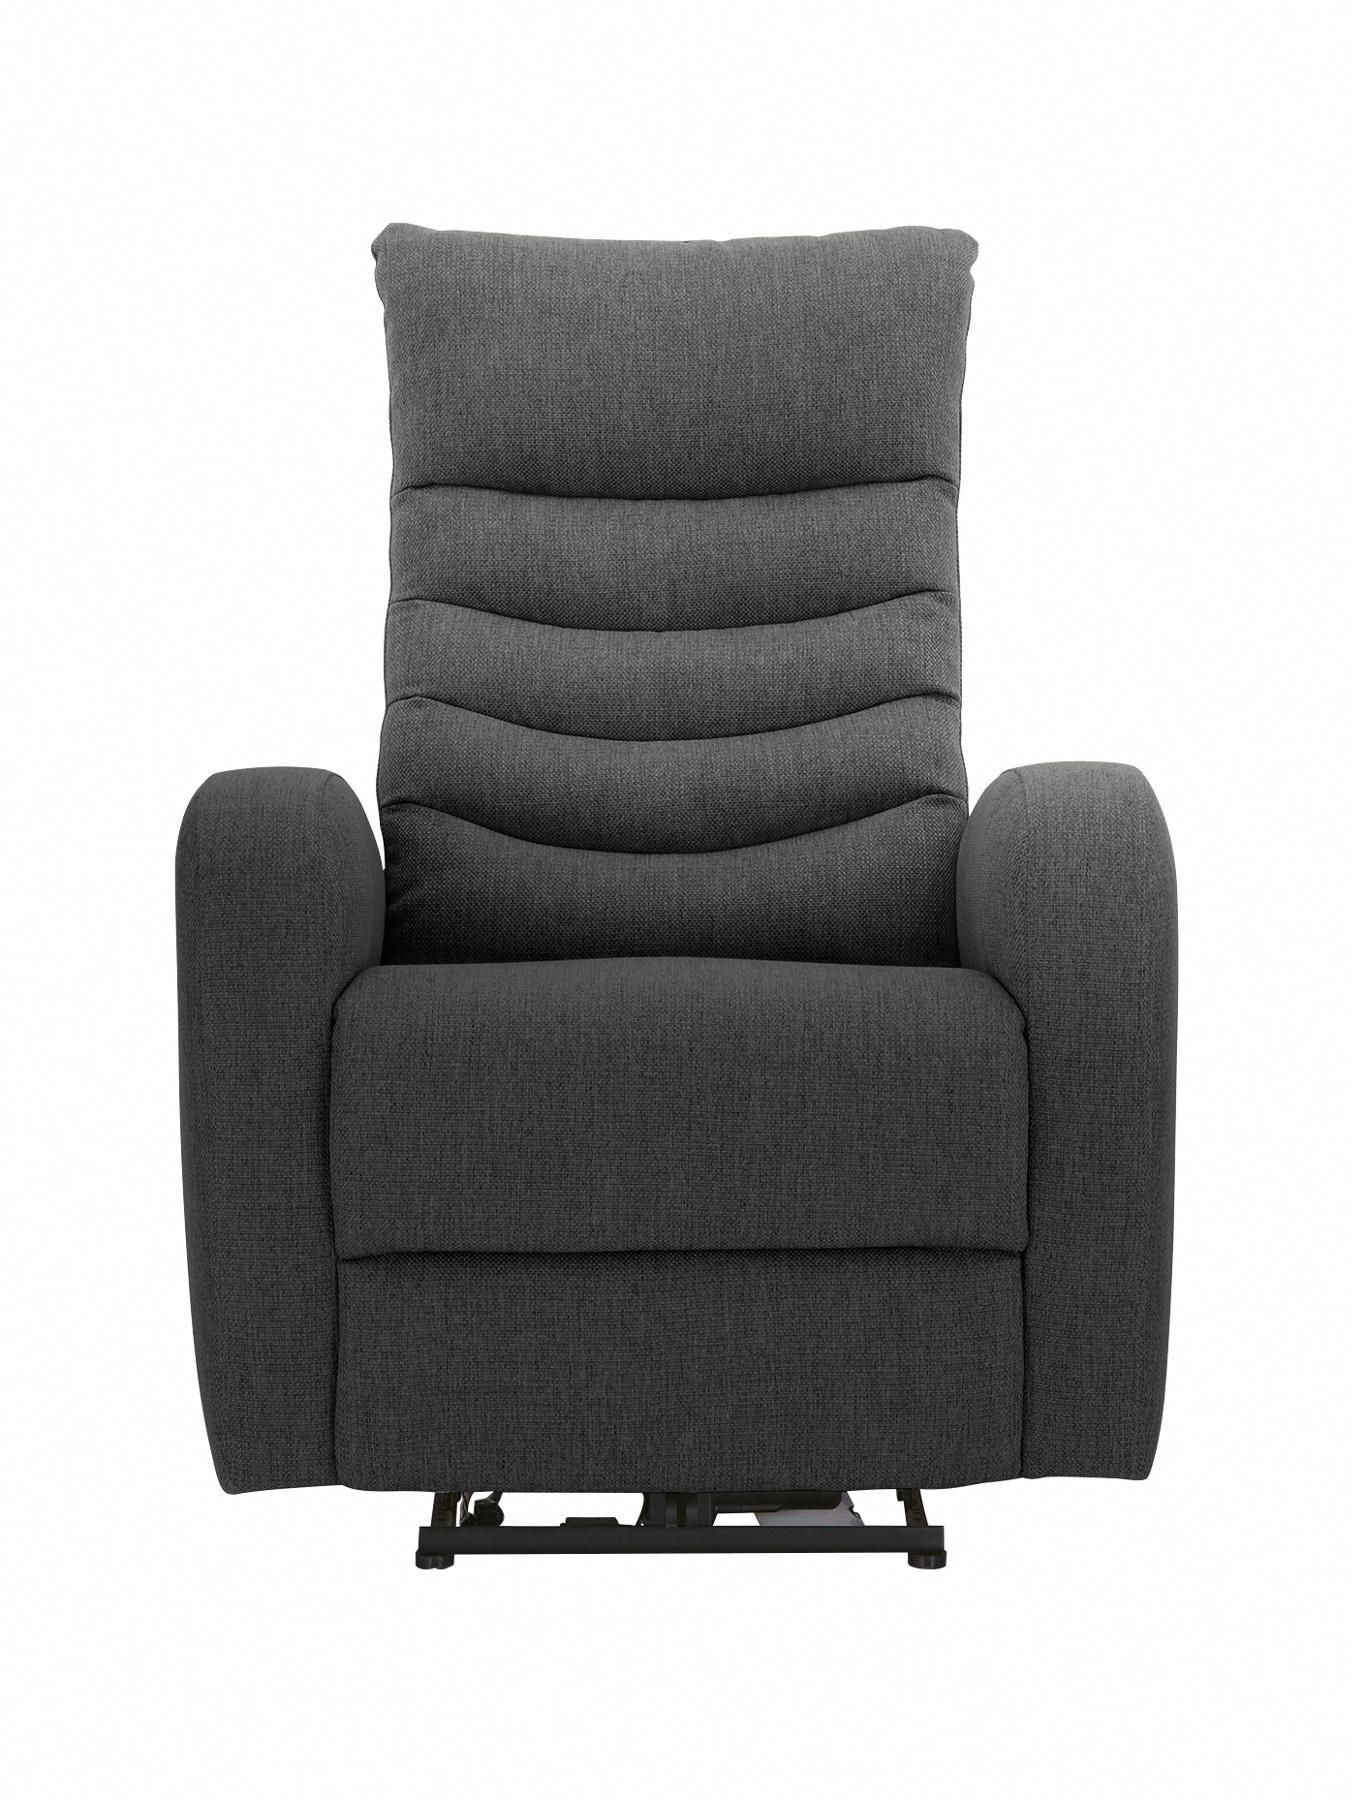 armless chair uk swing zara song ella electric recliner very co electricchair chairs